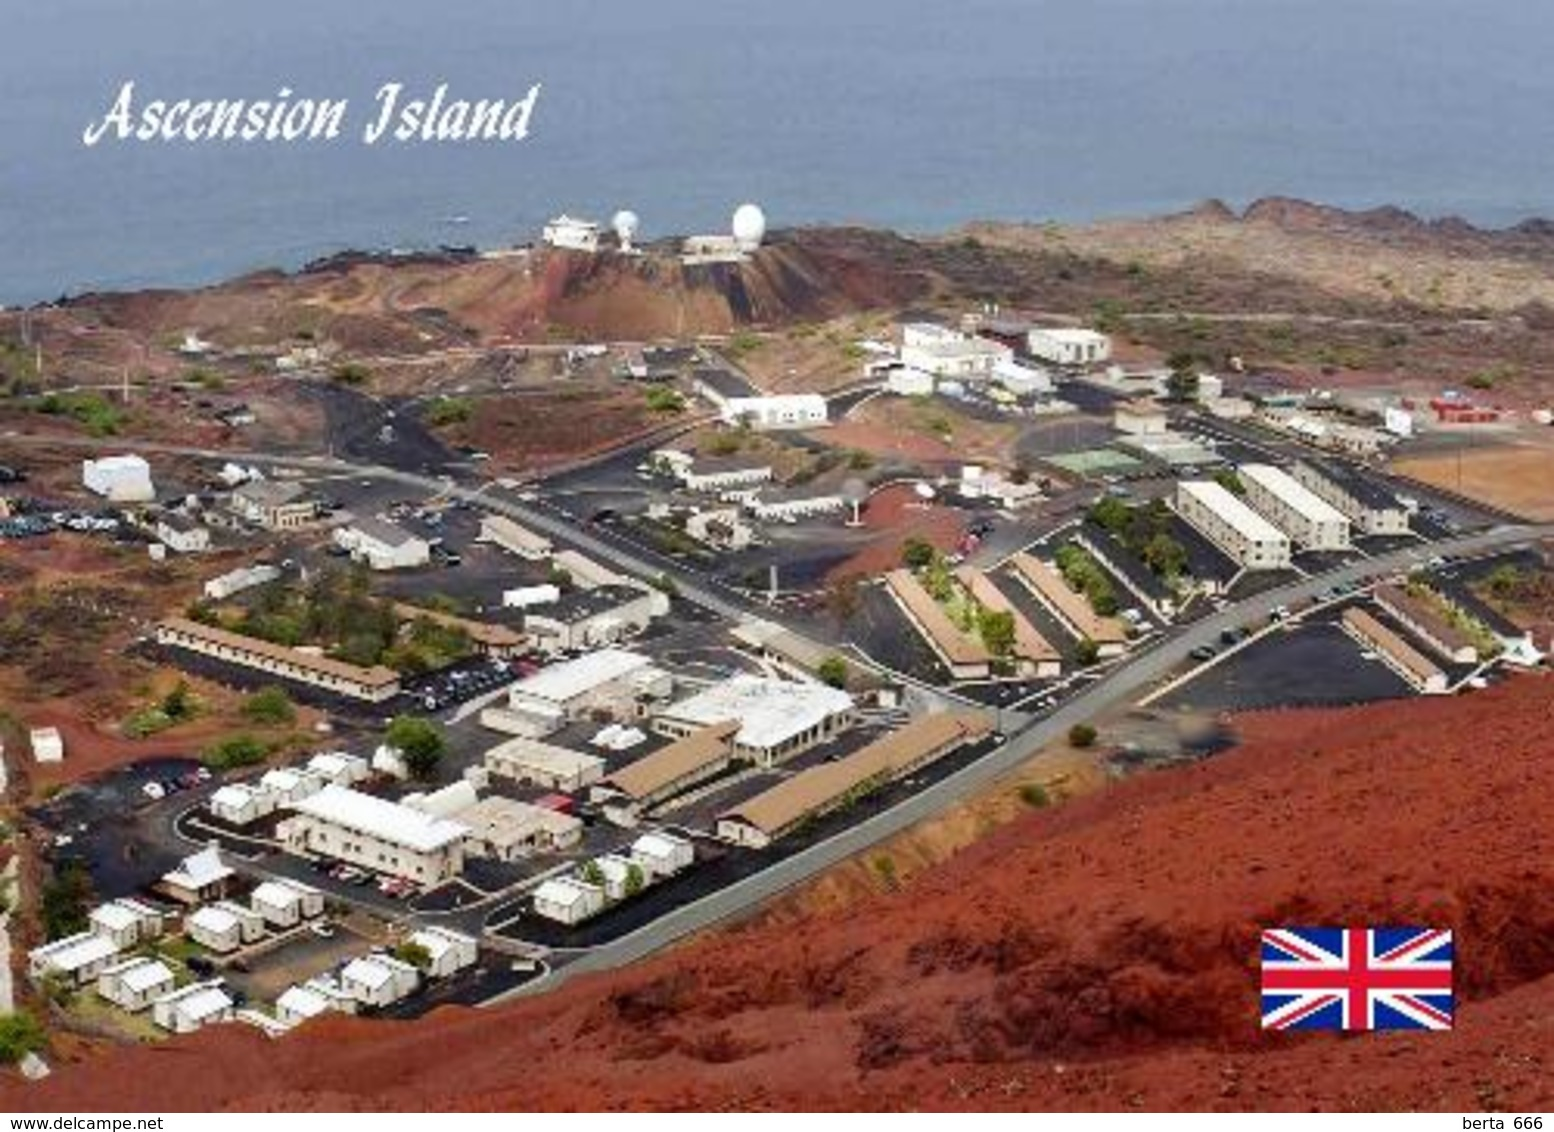 Ascension Island Aerial View New Postcard - Ascension